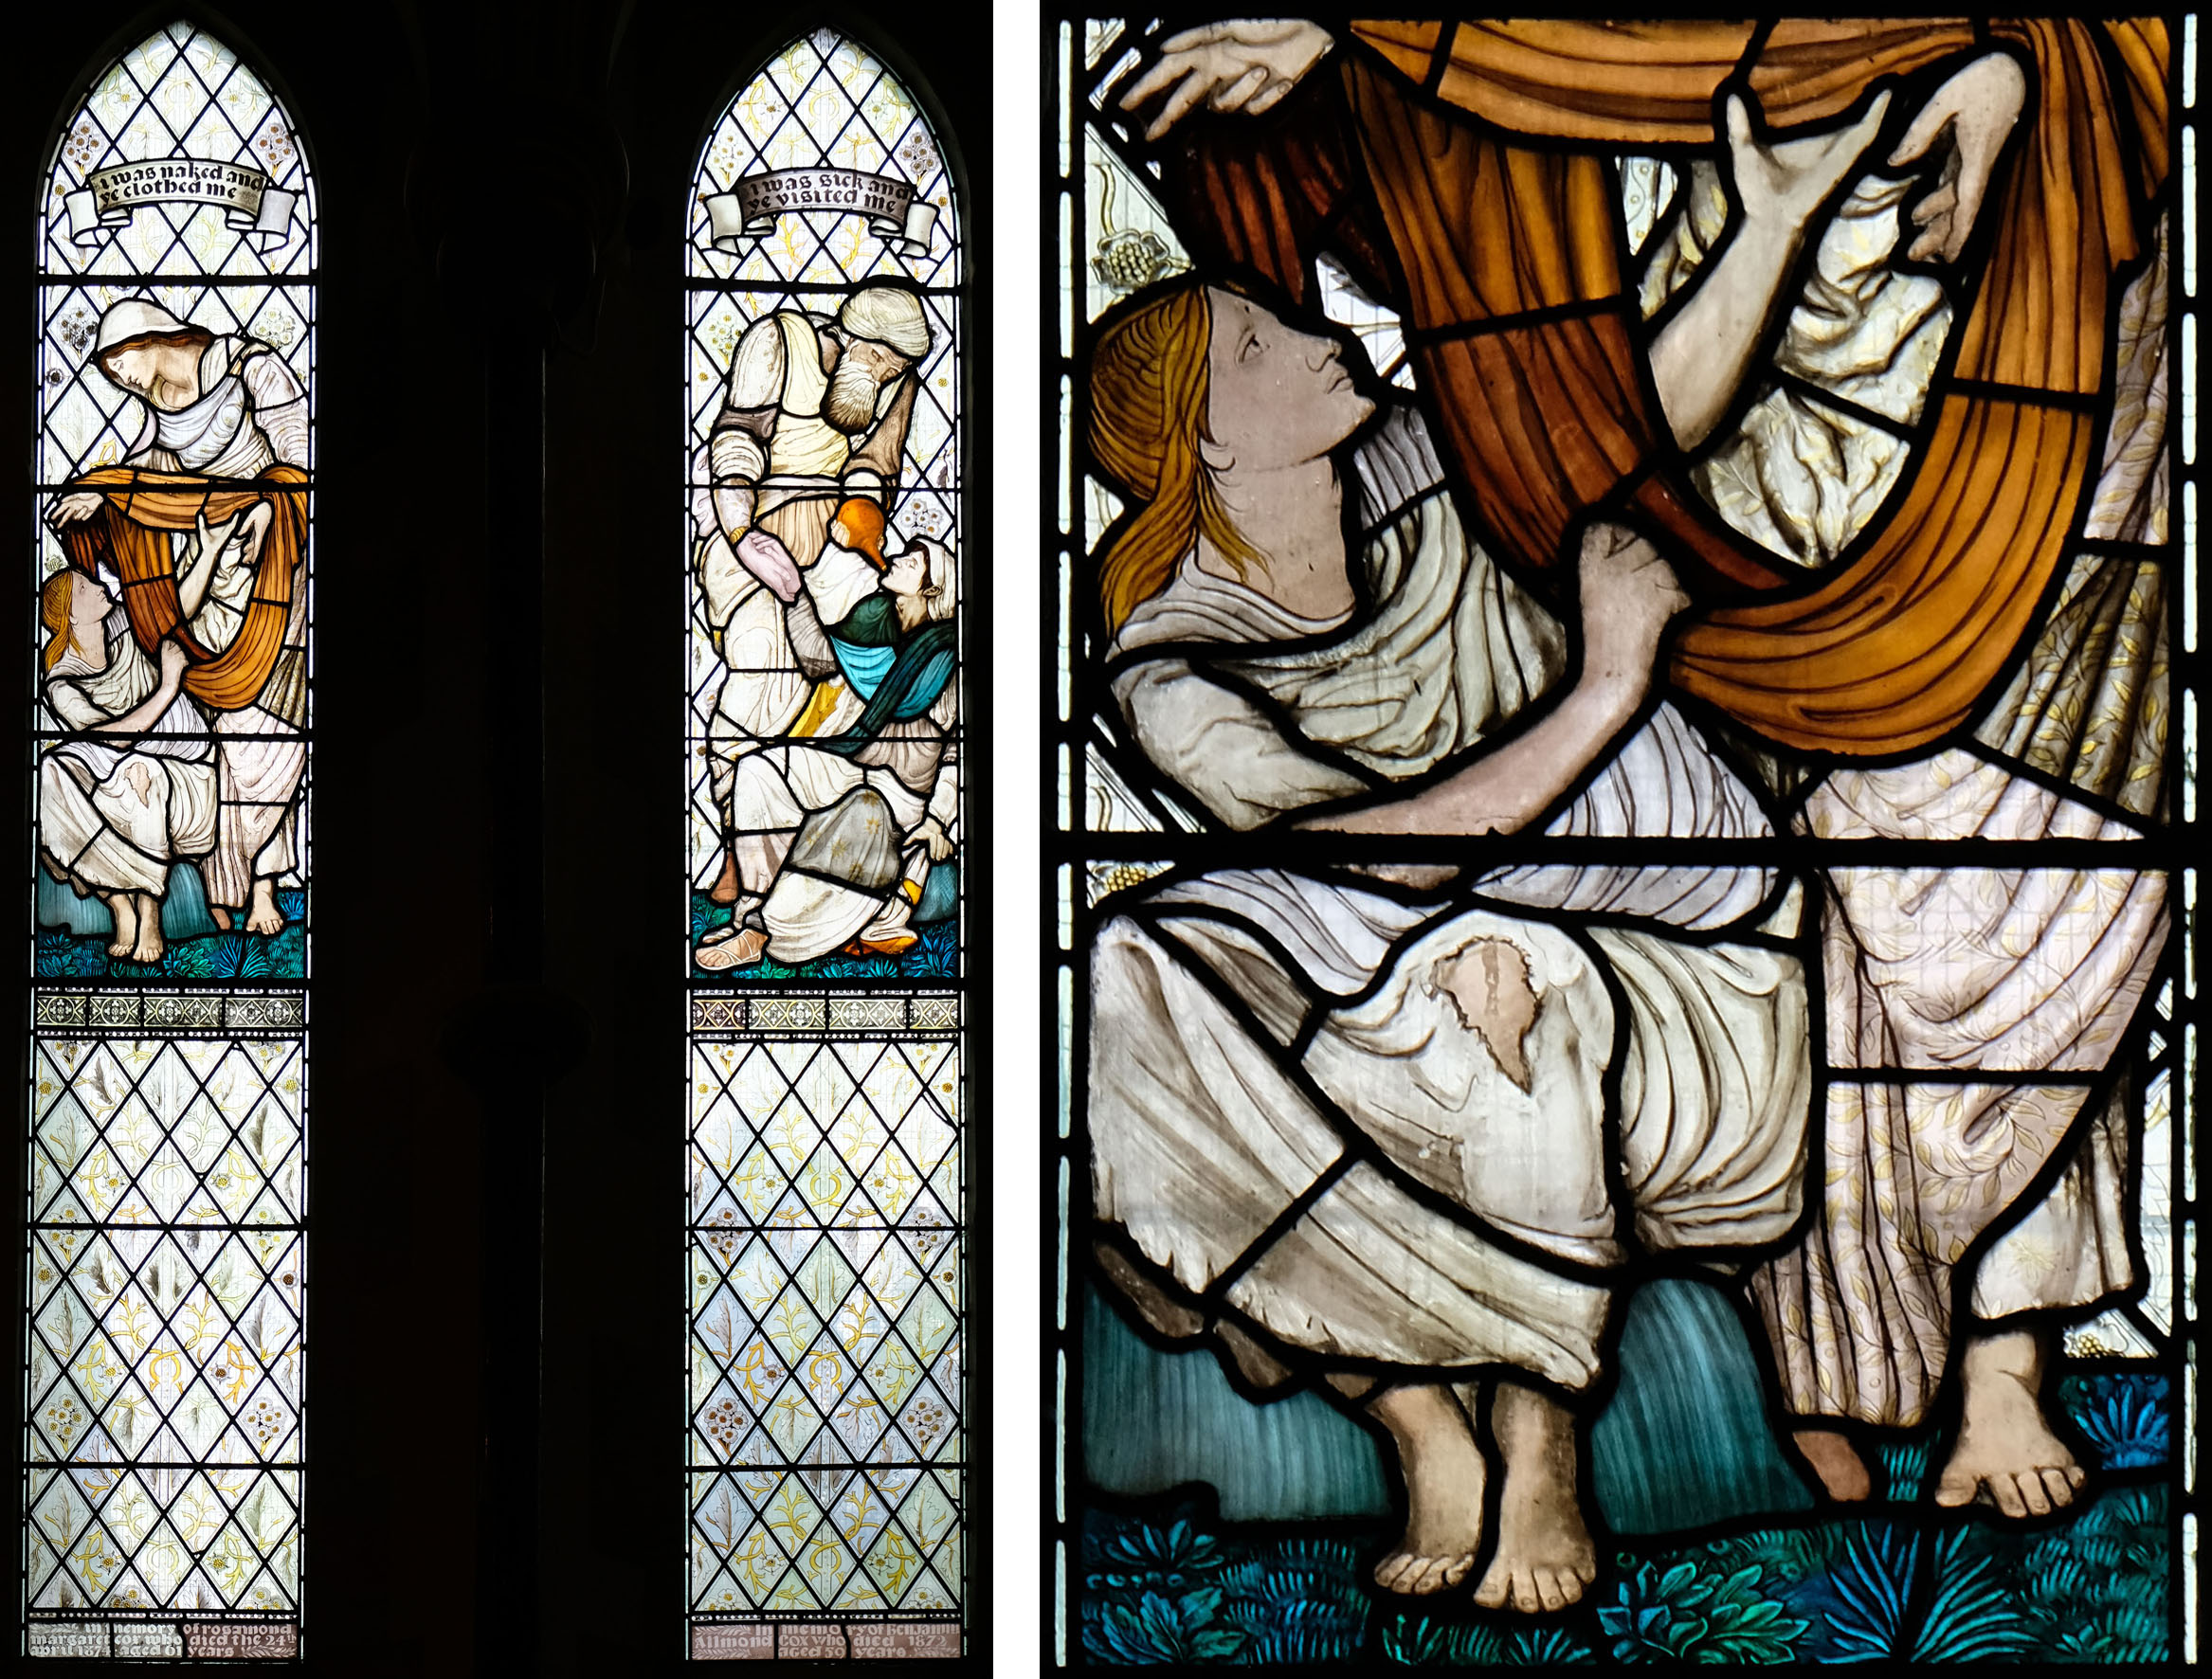 North chancel: Left, Dorcas. Right, The Good Samaritan (1876).